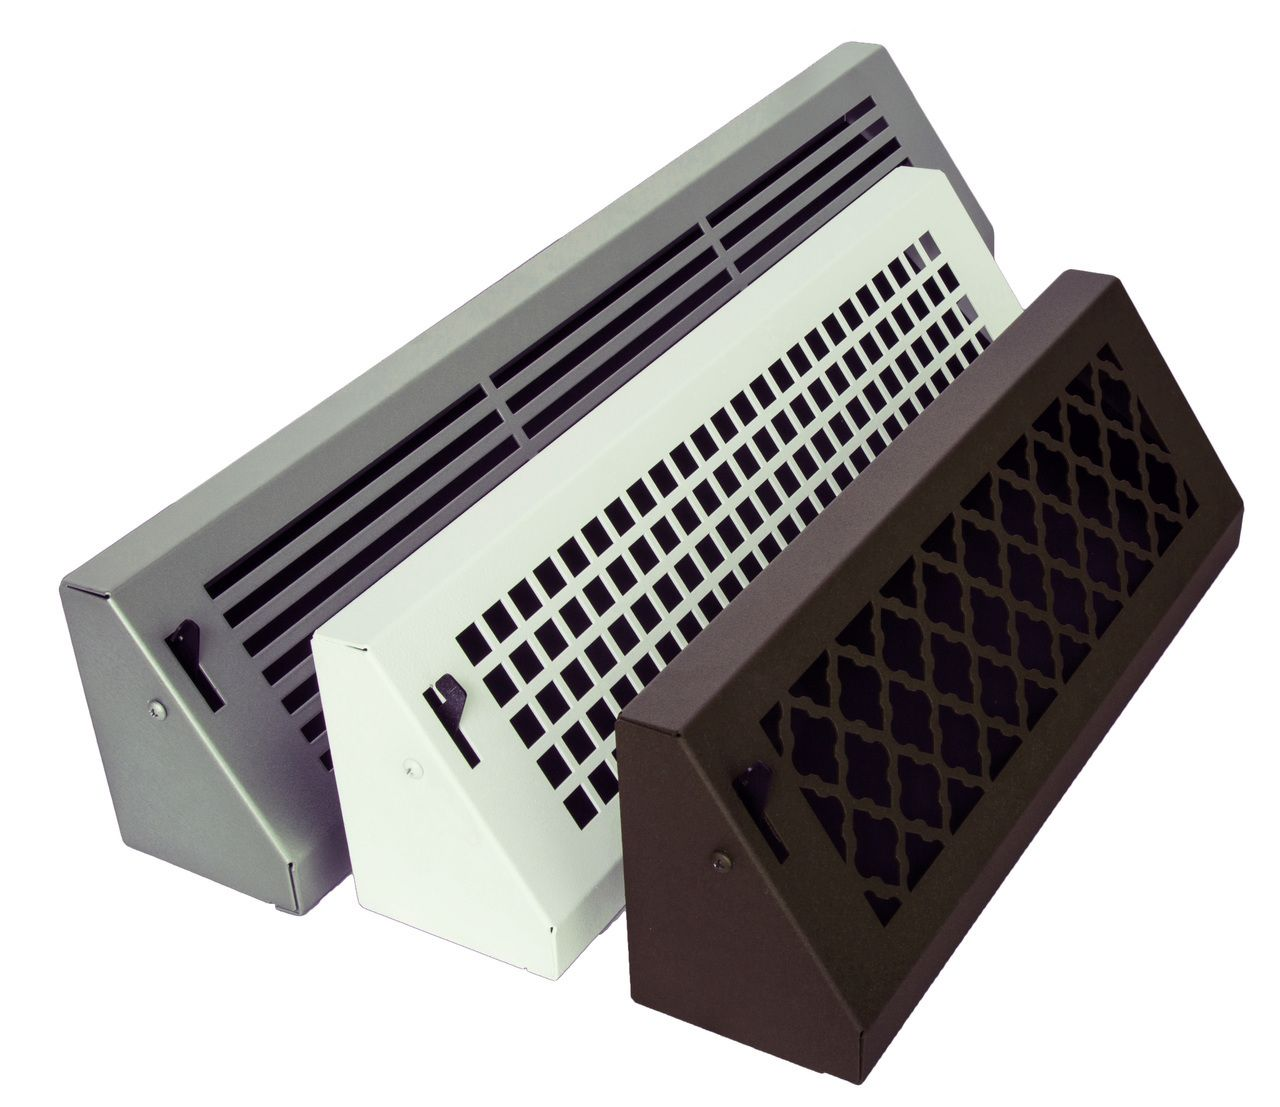 outdoor bathroom vent cover%0A Vent and Cover offers highquality decorative vent covers and replacement  baseboard covers